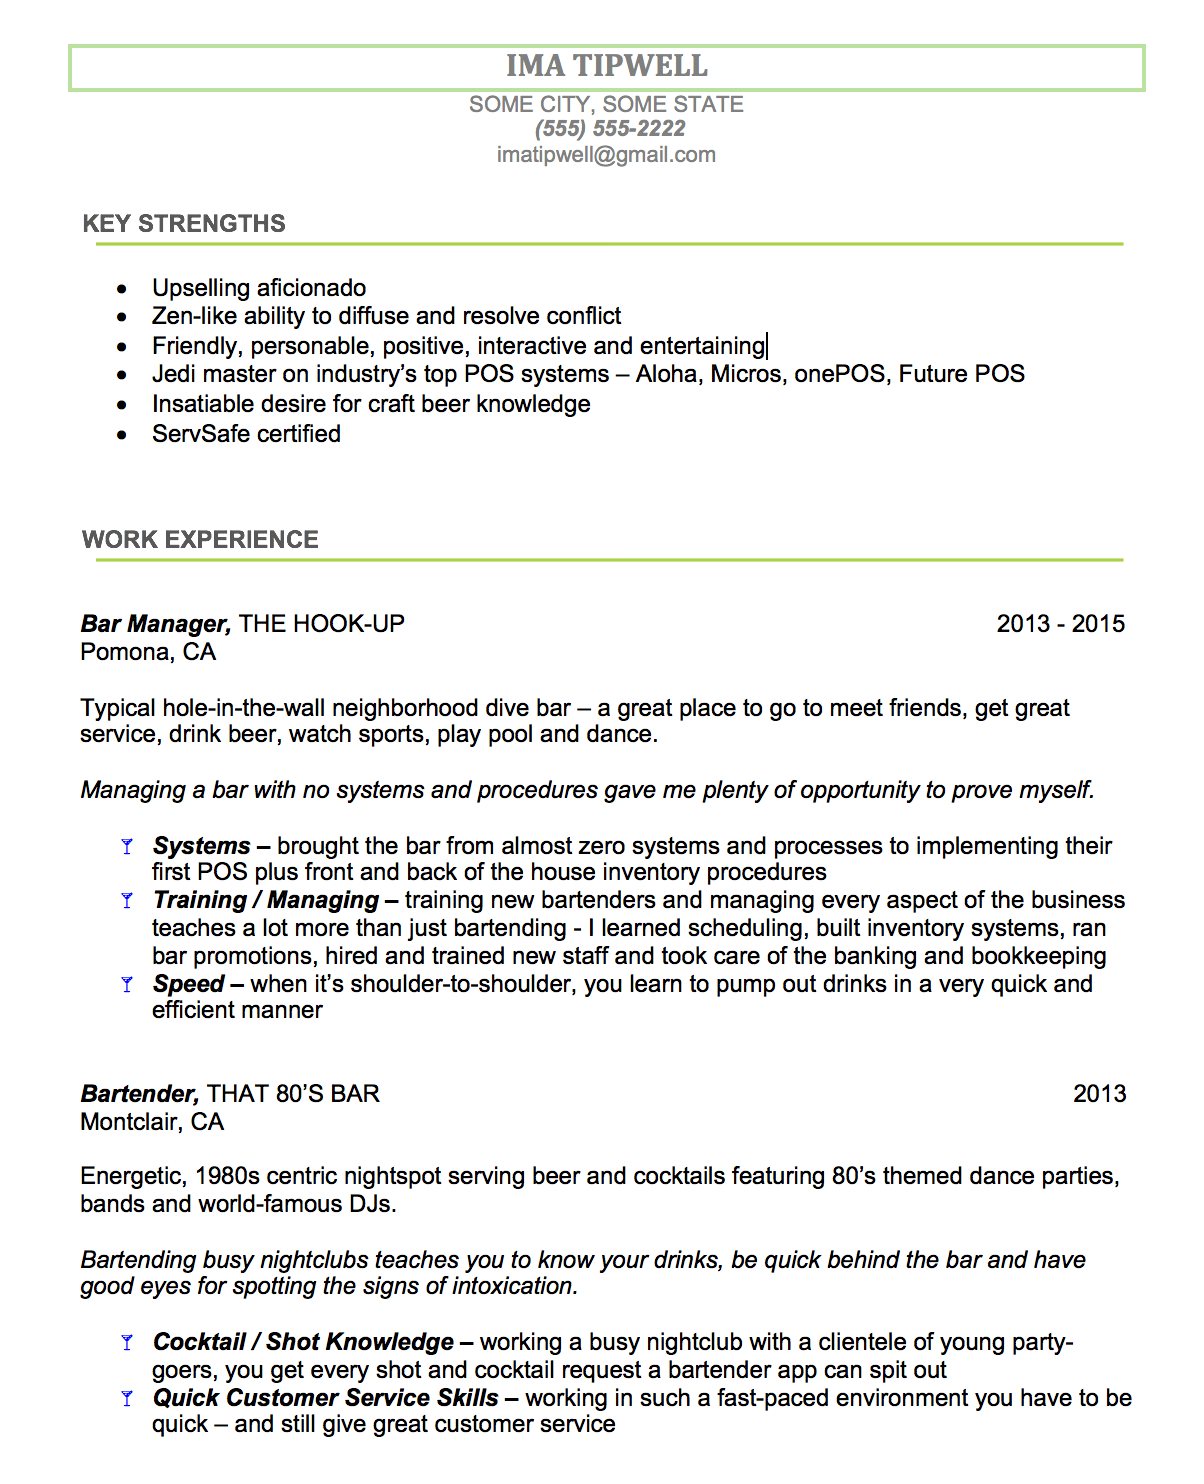 Bartending Resume Examples Bartenders Resume Writing Service We Tailor The Resume To You